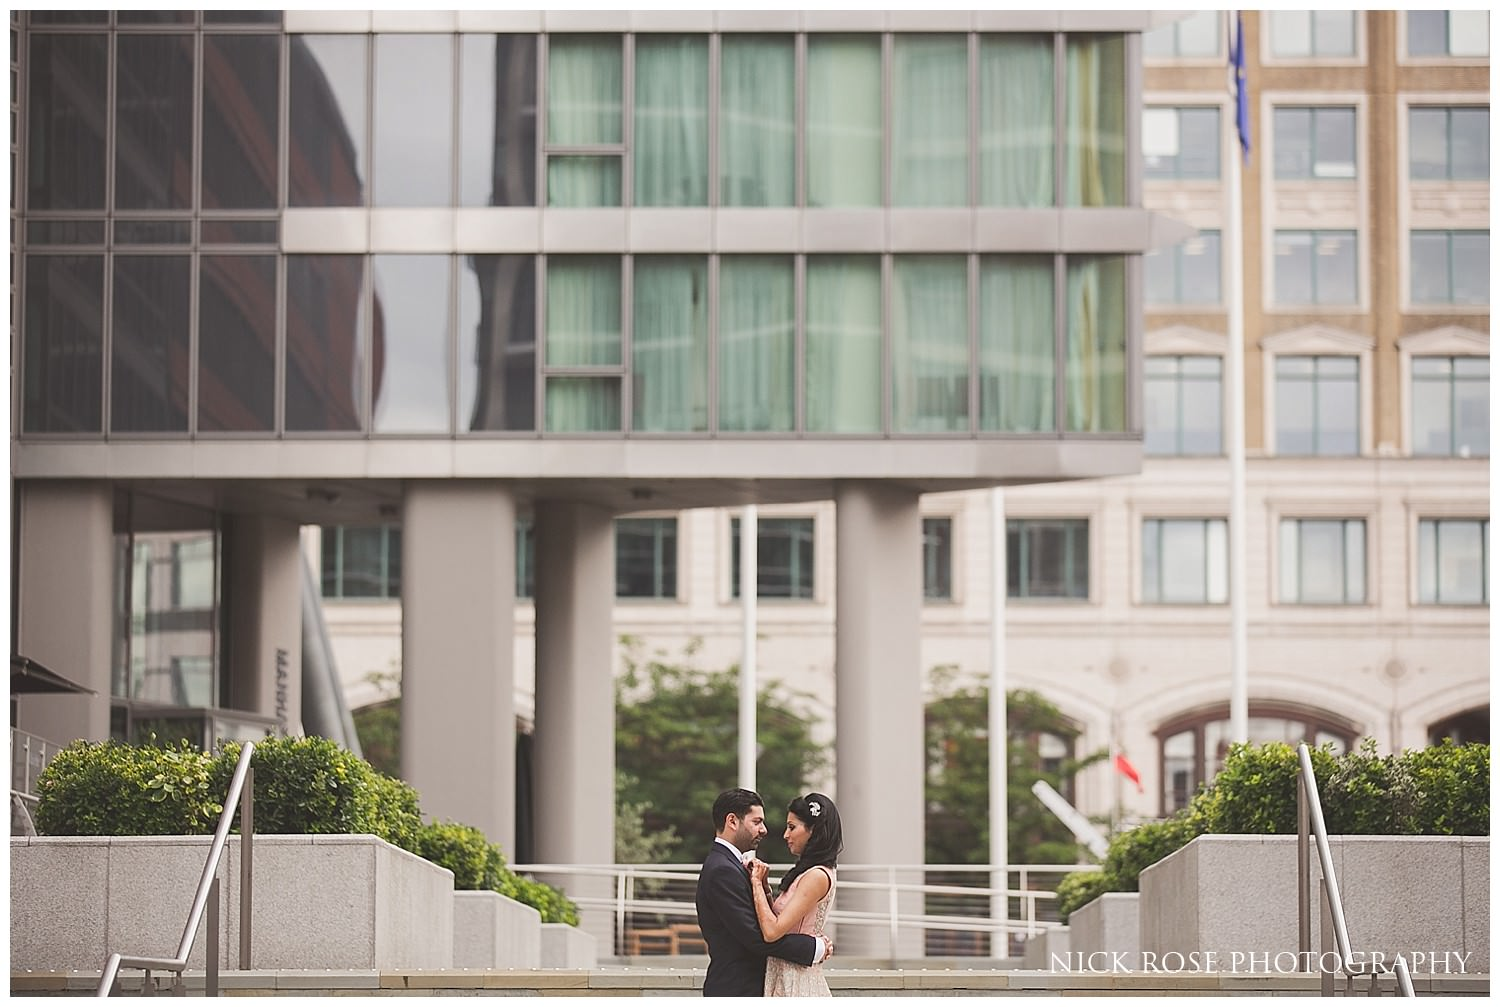 Bride and Groom Indian wedding photography portrait at Canary Wharf